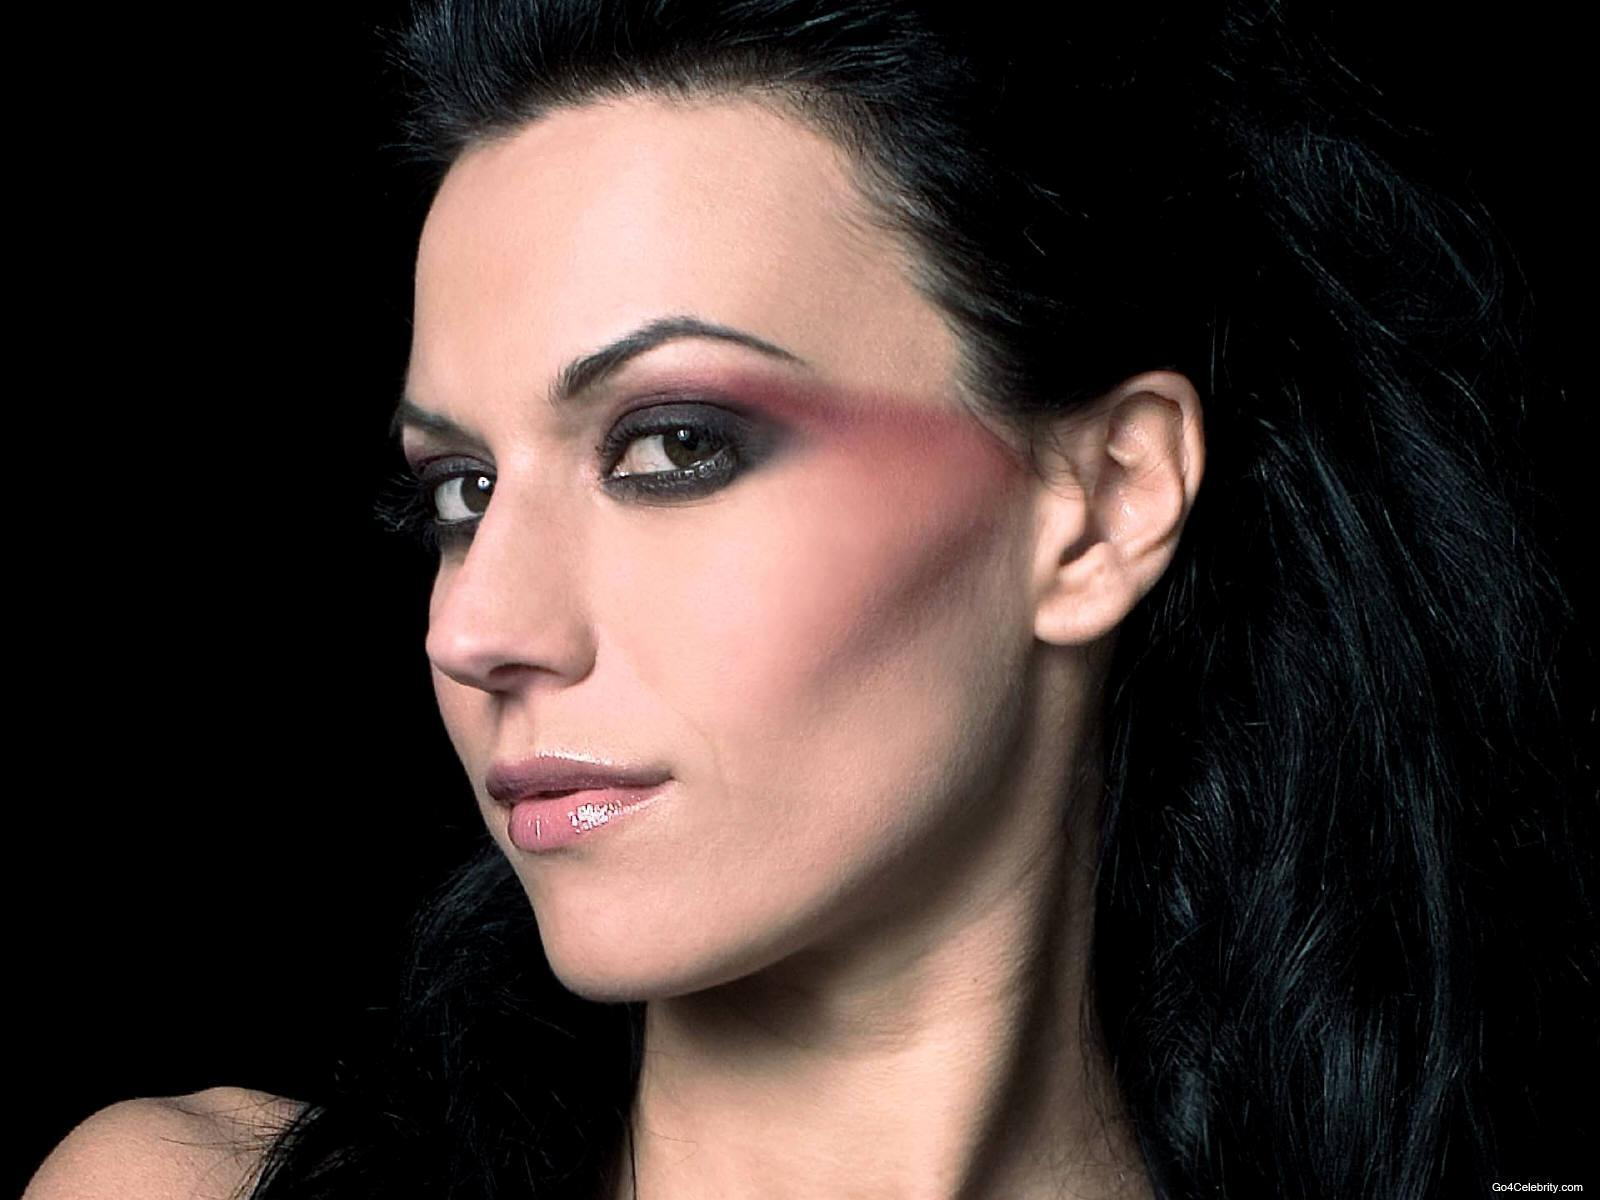 Cristina Scabbia - Images Gallery